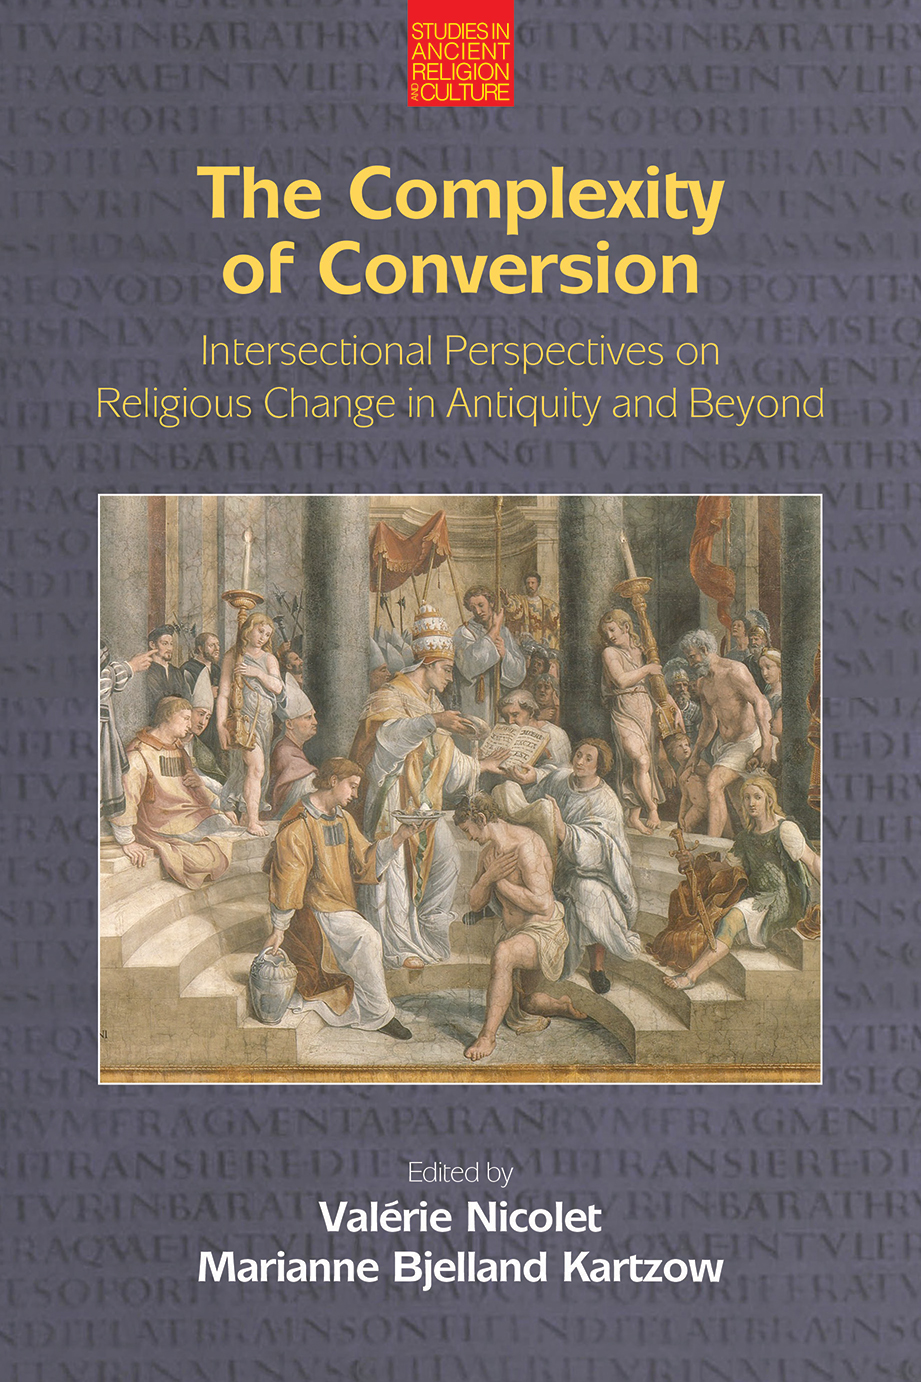 The Complexity of Conversion